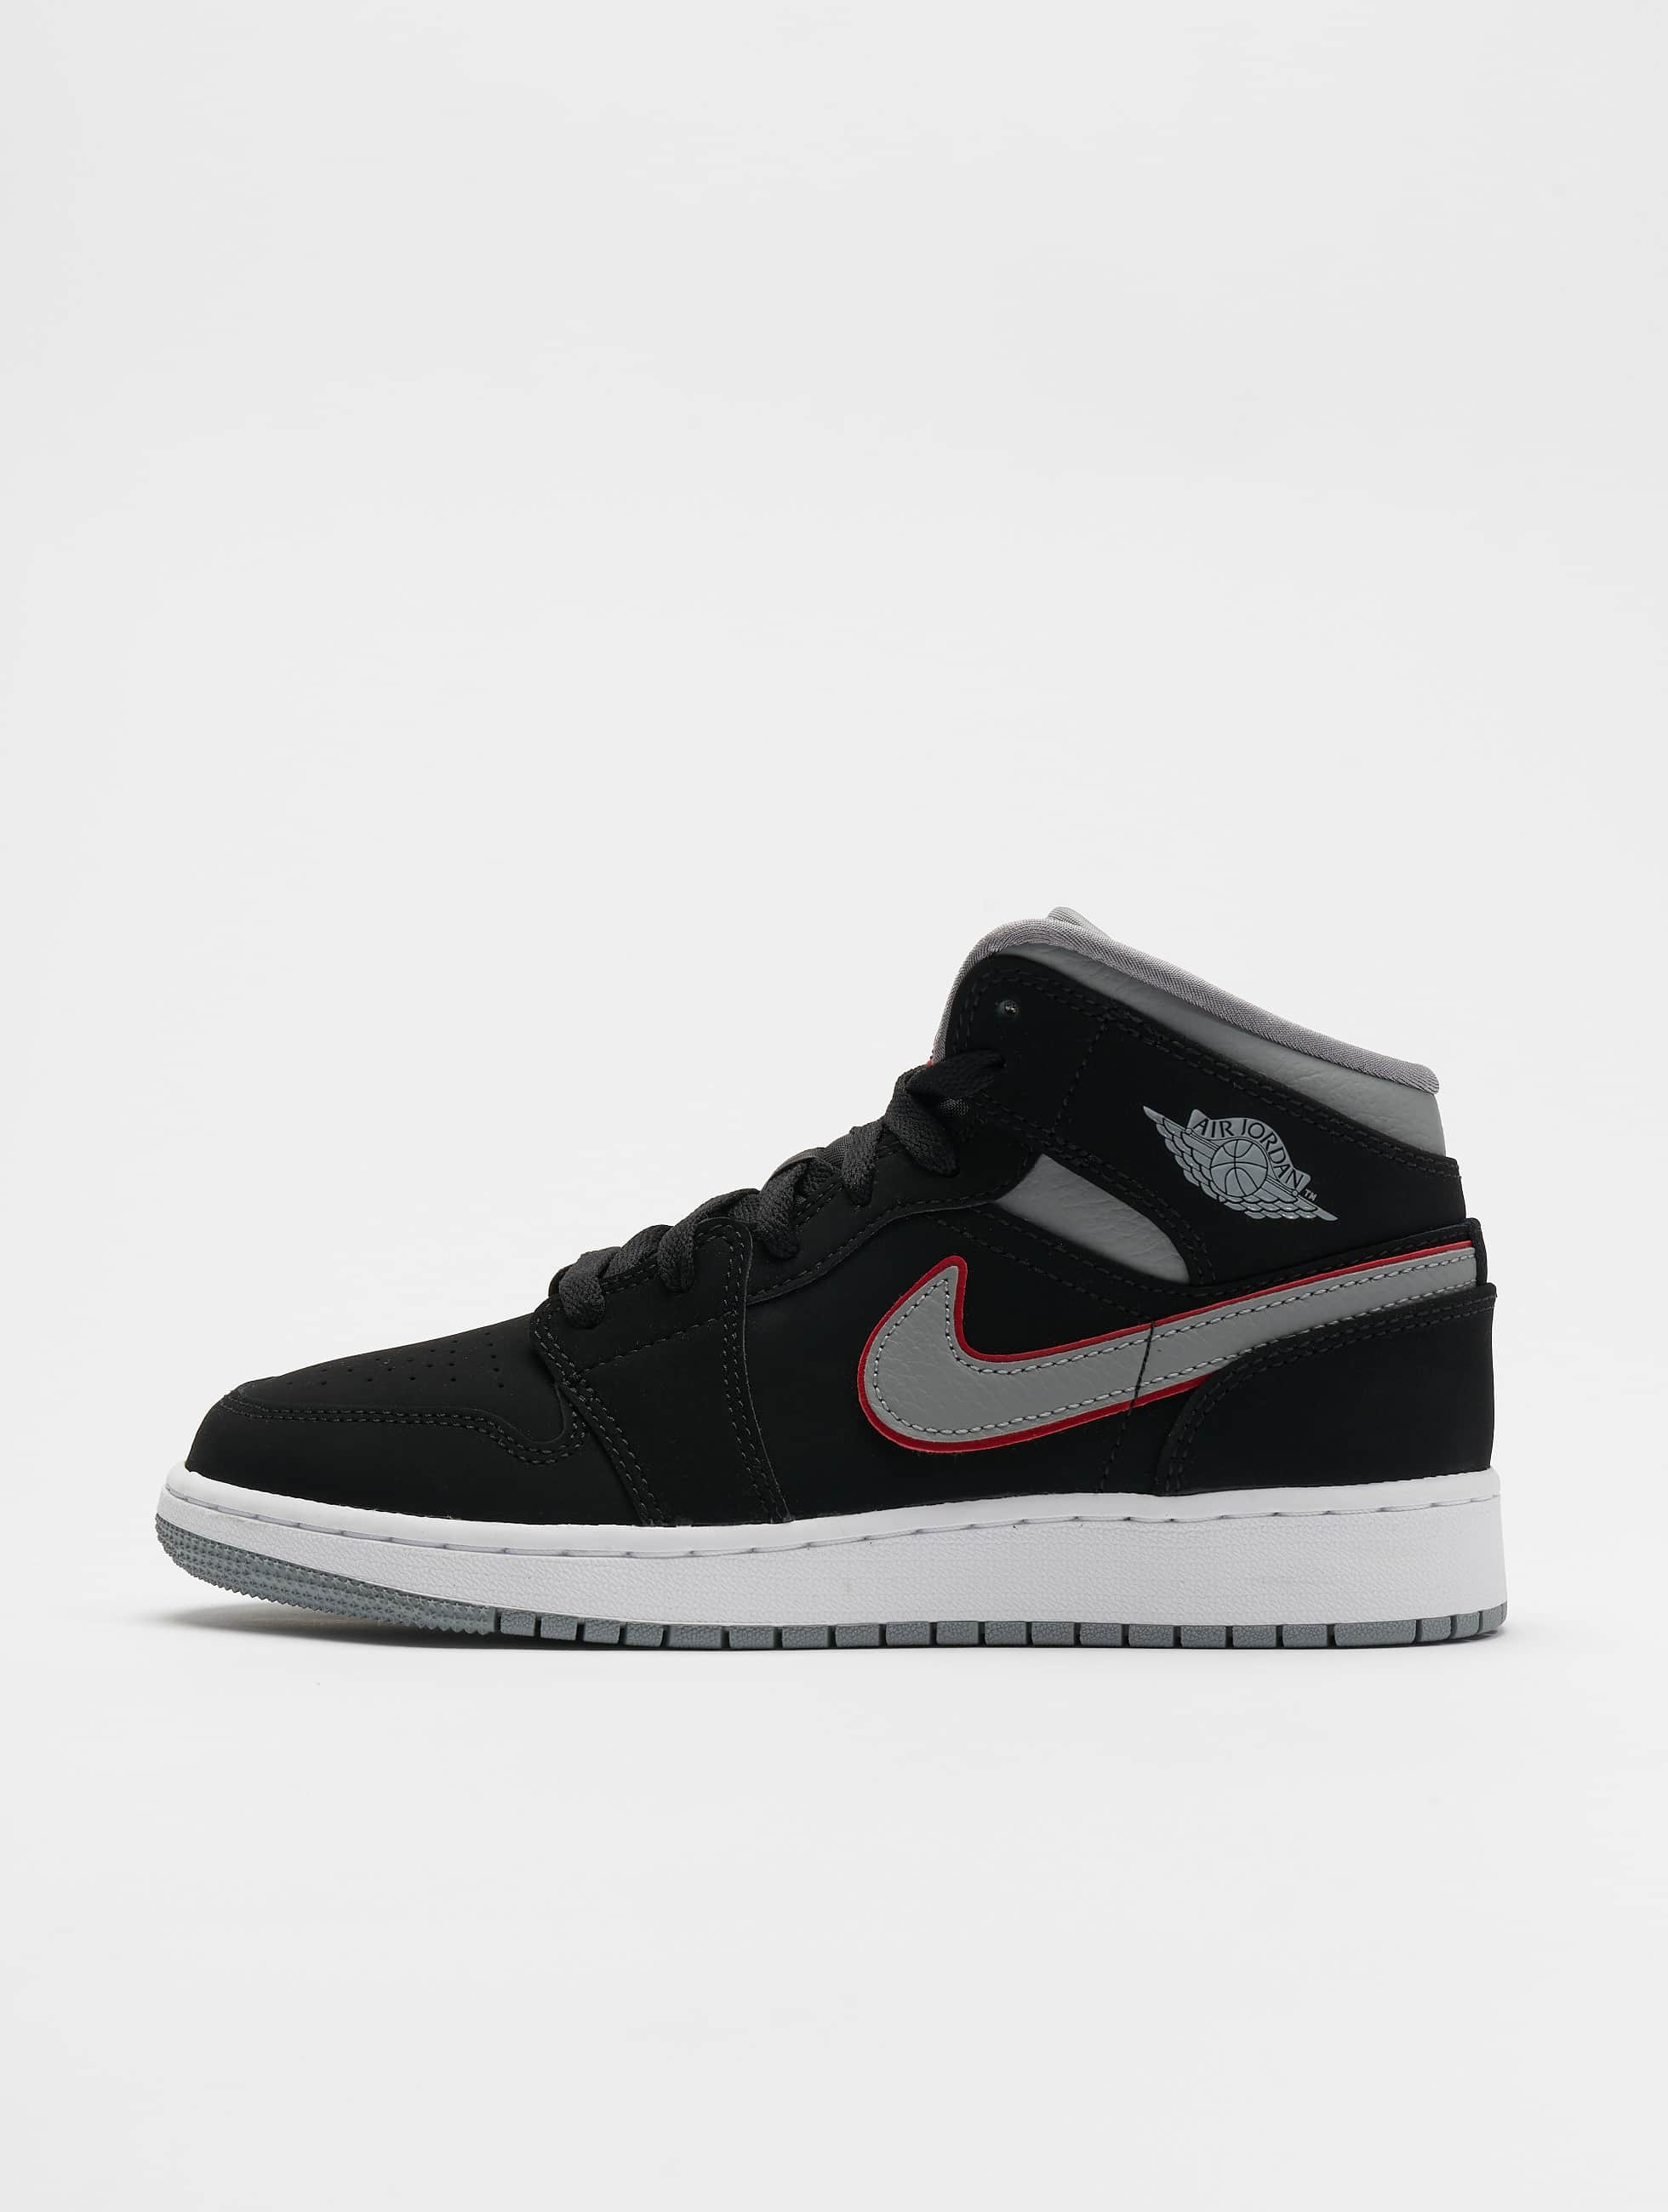 livraison gratuite 8ef70 095bf Nike Air Jordan 1 Mid (GS) Sneakers Black/Particle Grey/White/Gym Red